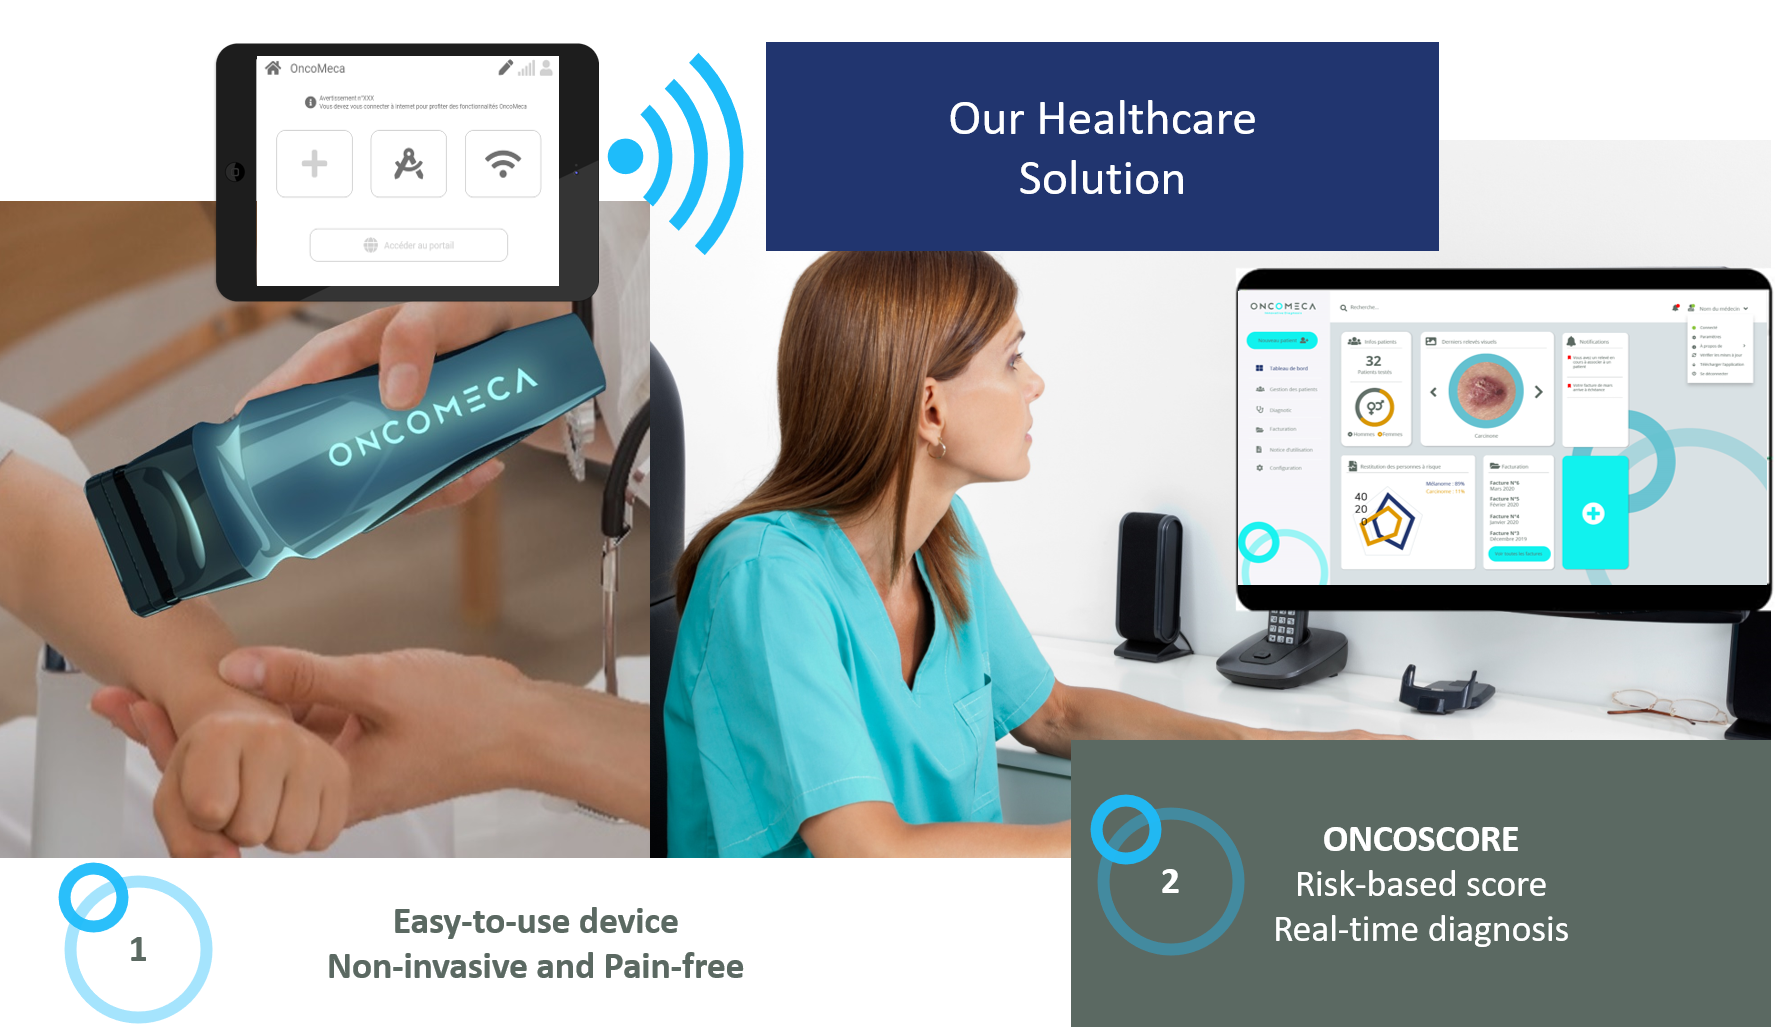 Oue Healthcare solution